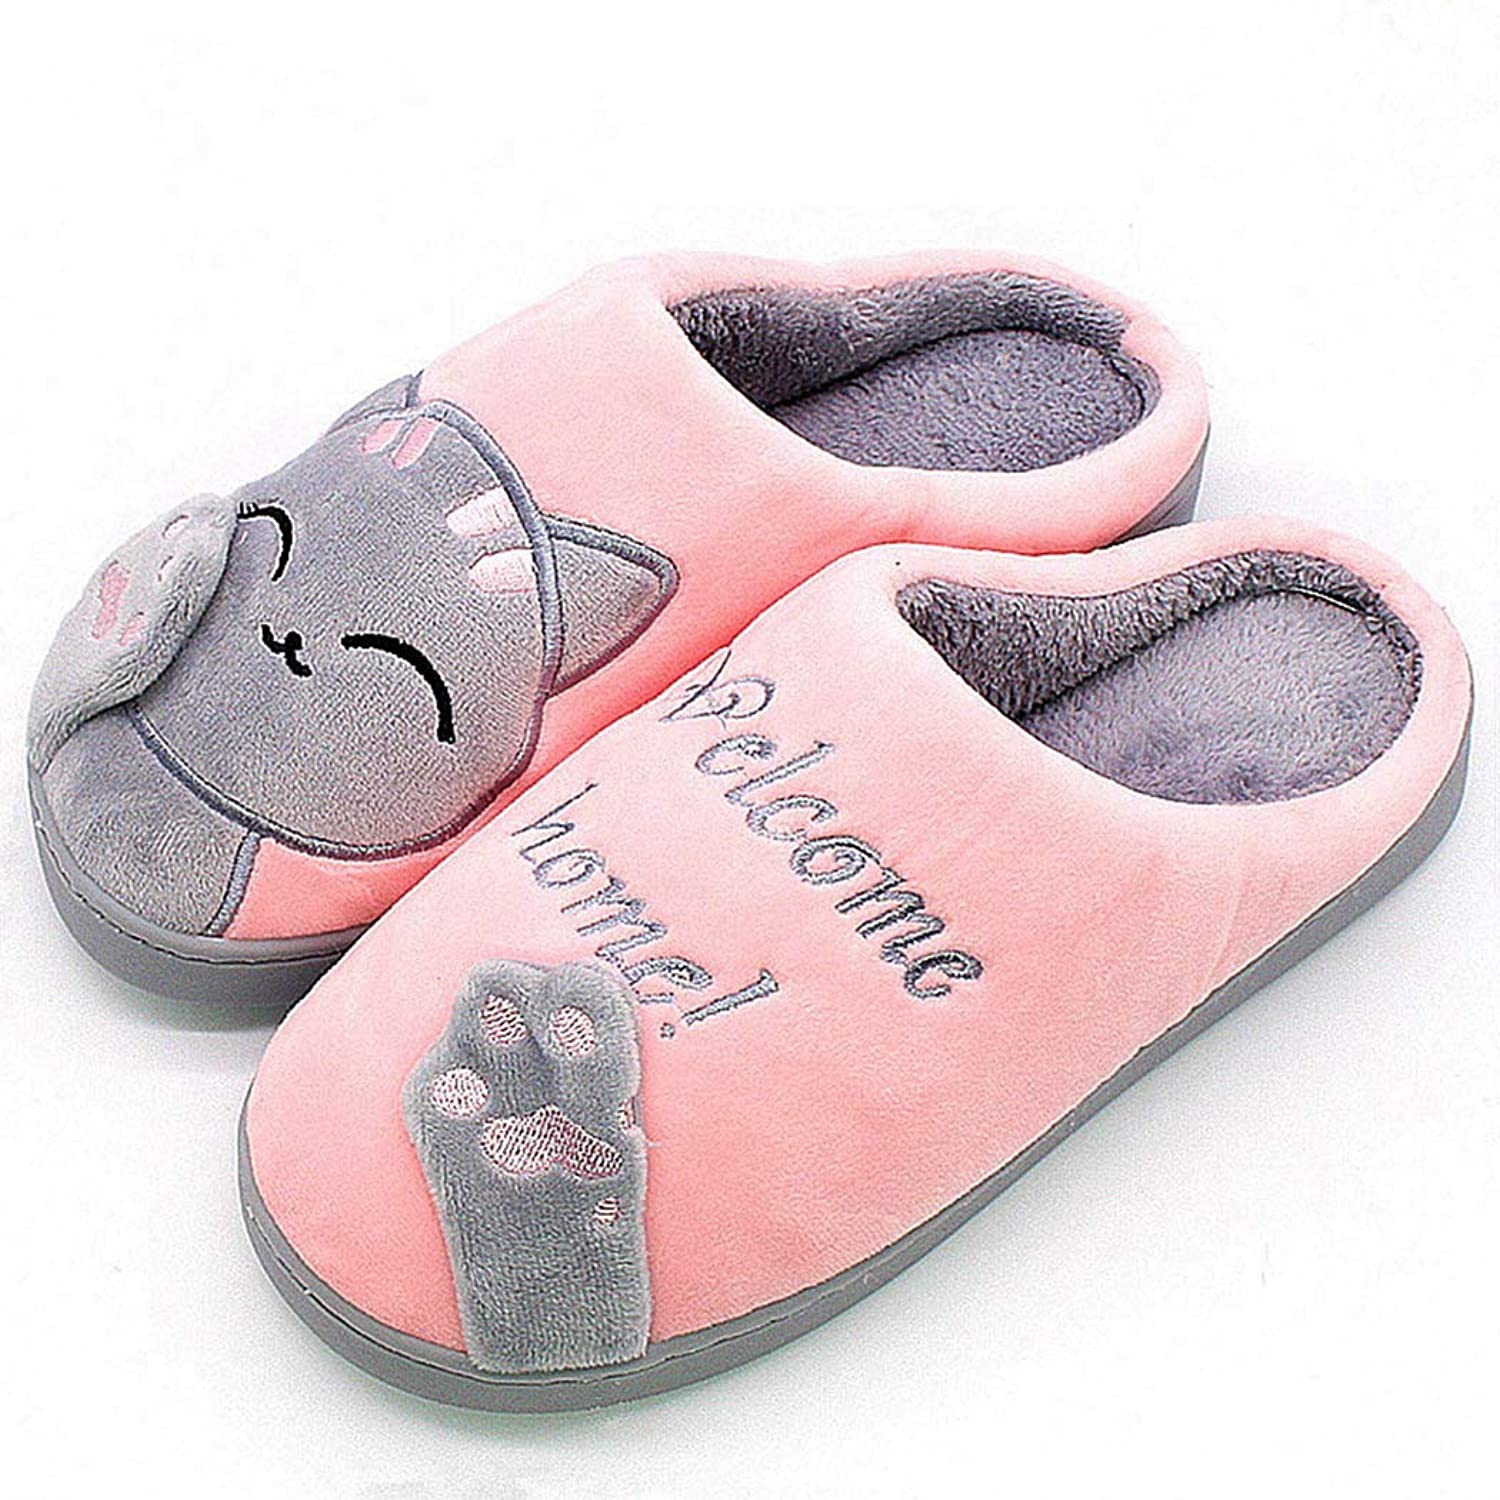 Nafanio Winter Warm Cut Slippers Home Women Arch Support Memory Foam Indoor Plush Female Animal Ladies shoes